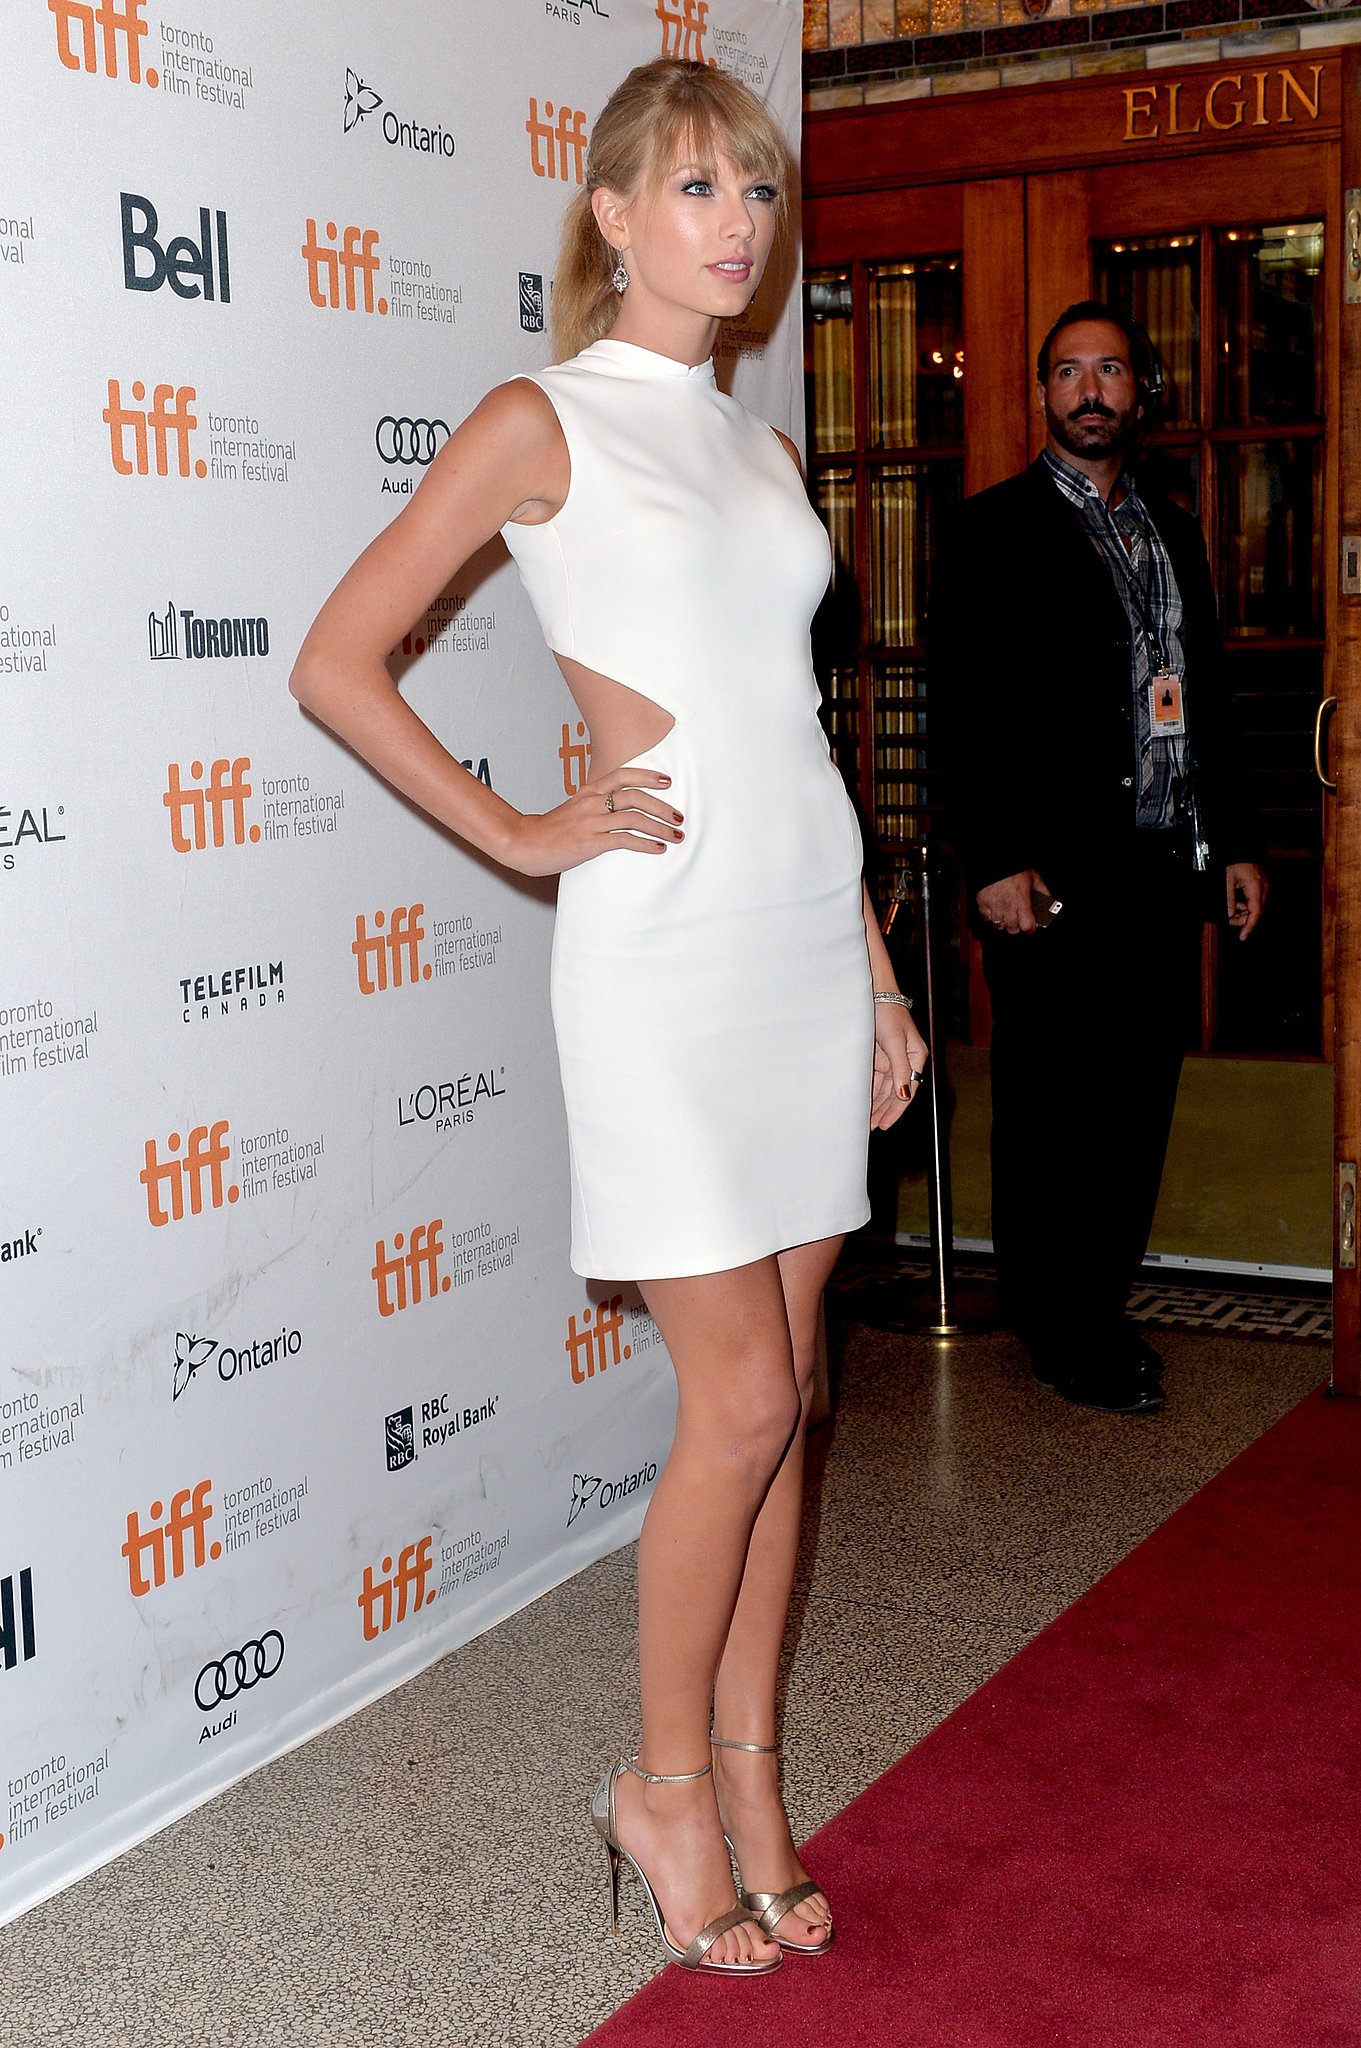 Taylor Swift attended the One Chance premiere.